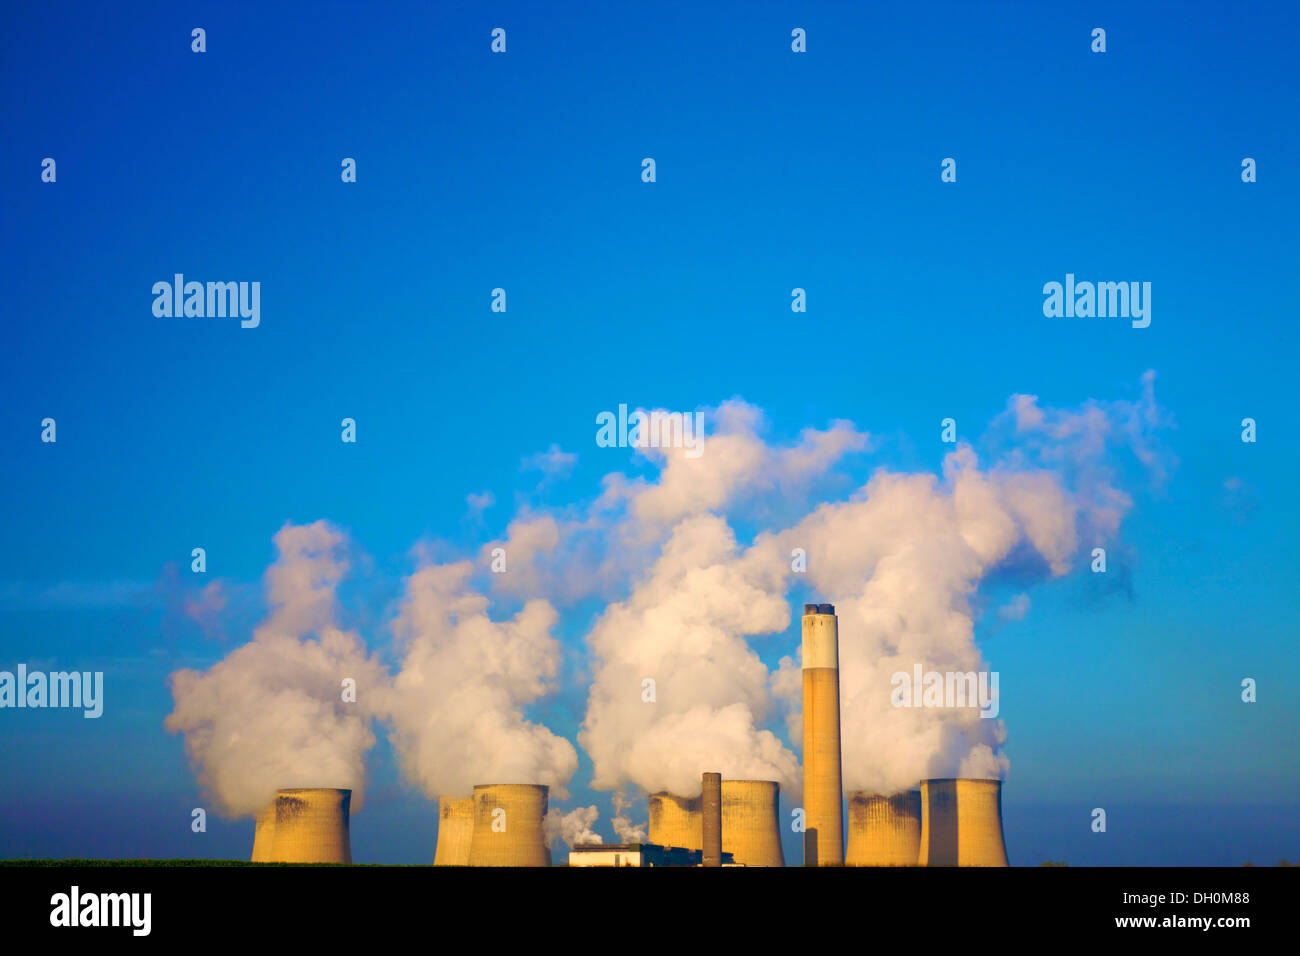 Ratcliffe On Soar Power Station, Nottinghamshire, England - Stock Image